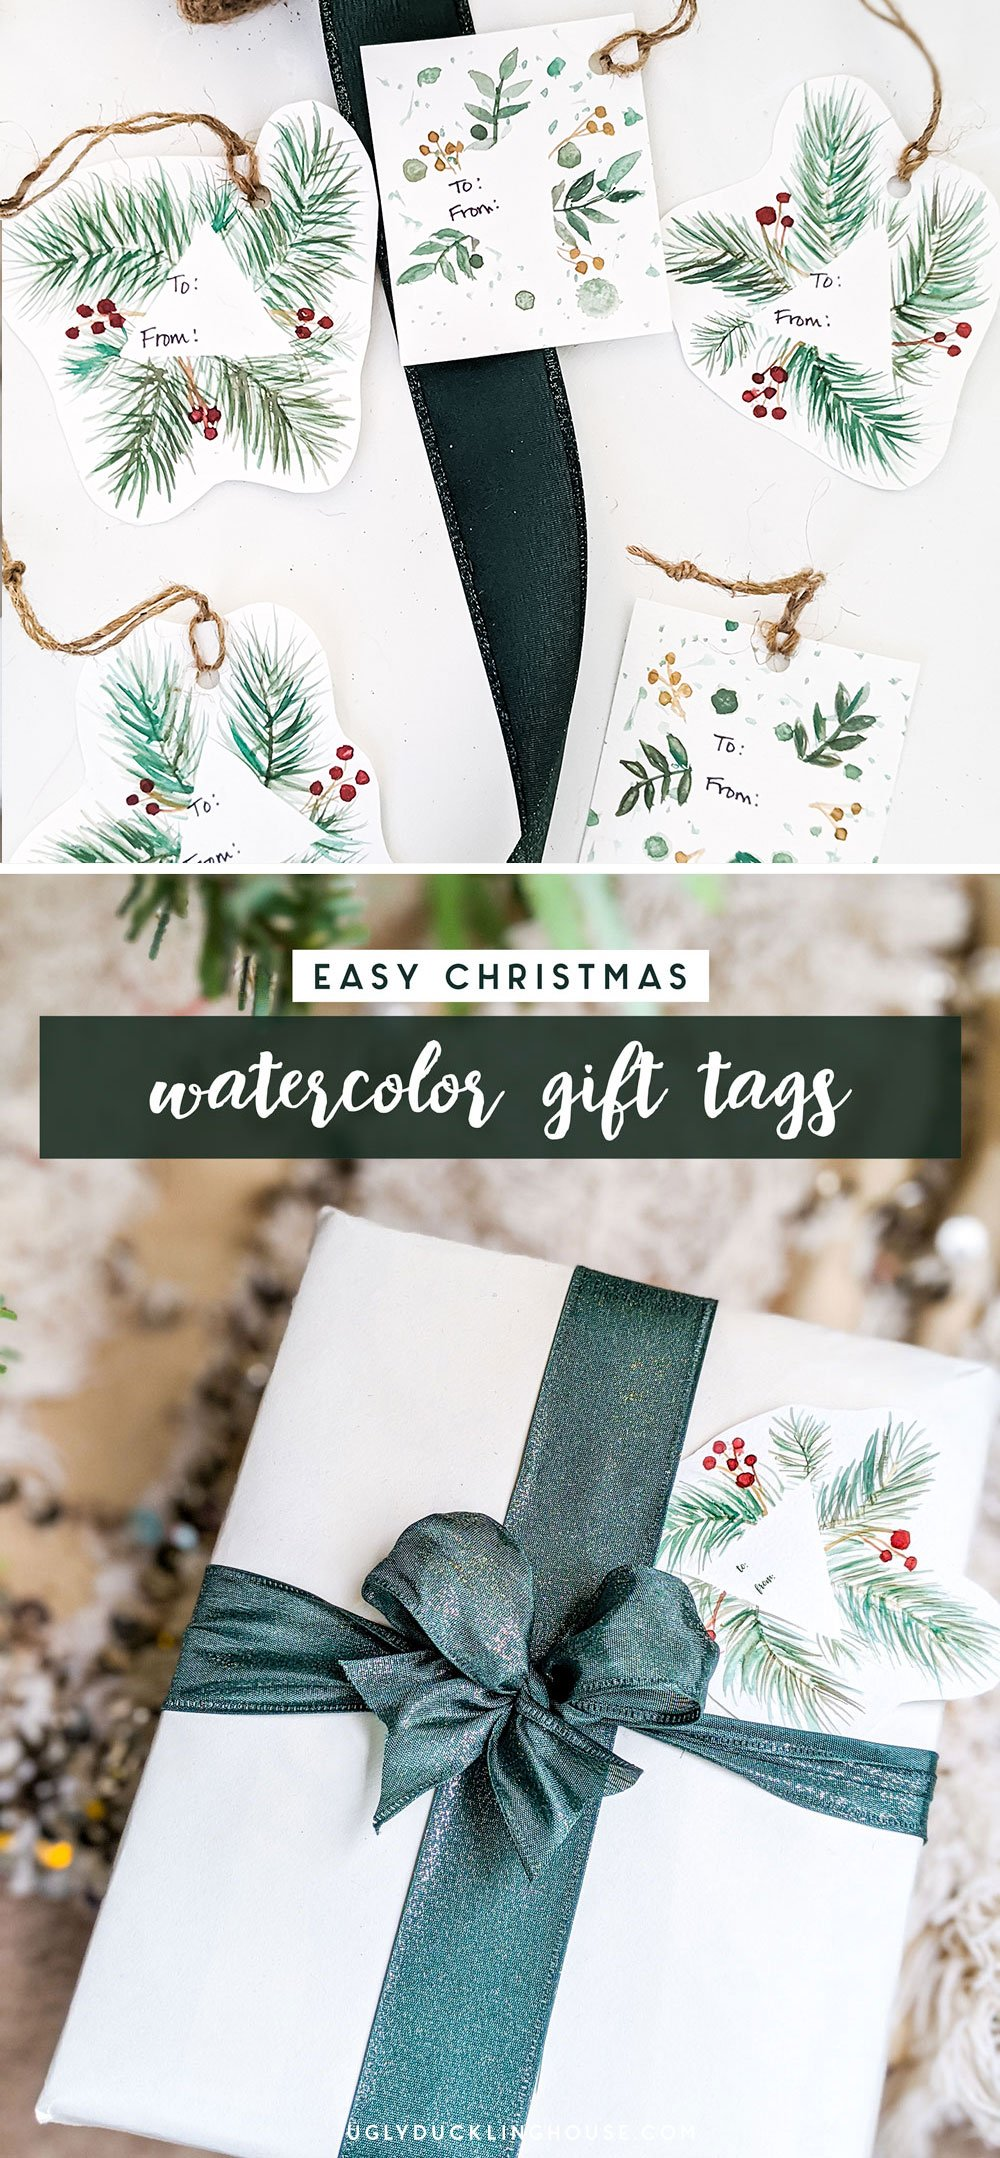 watercolor gift tags assorted